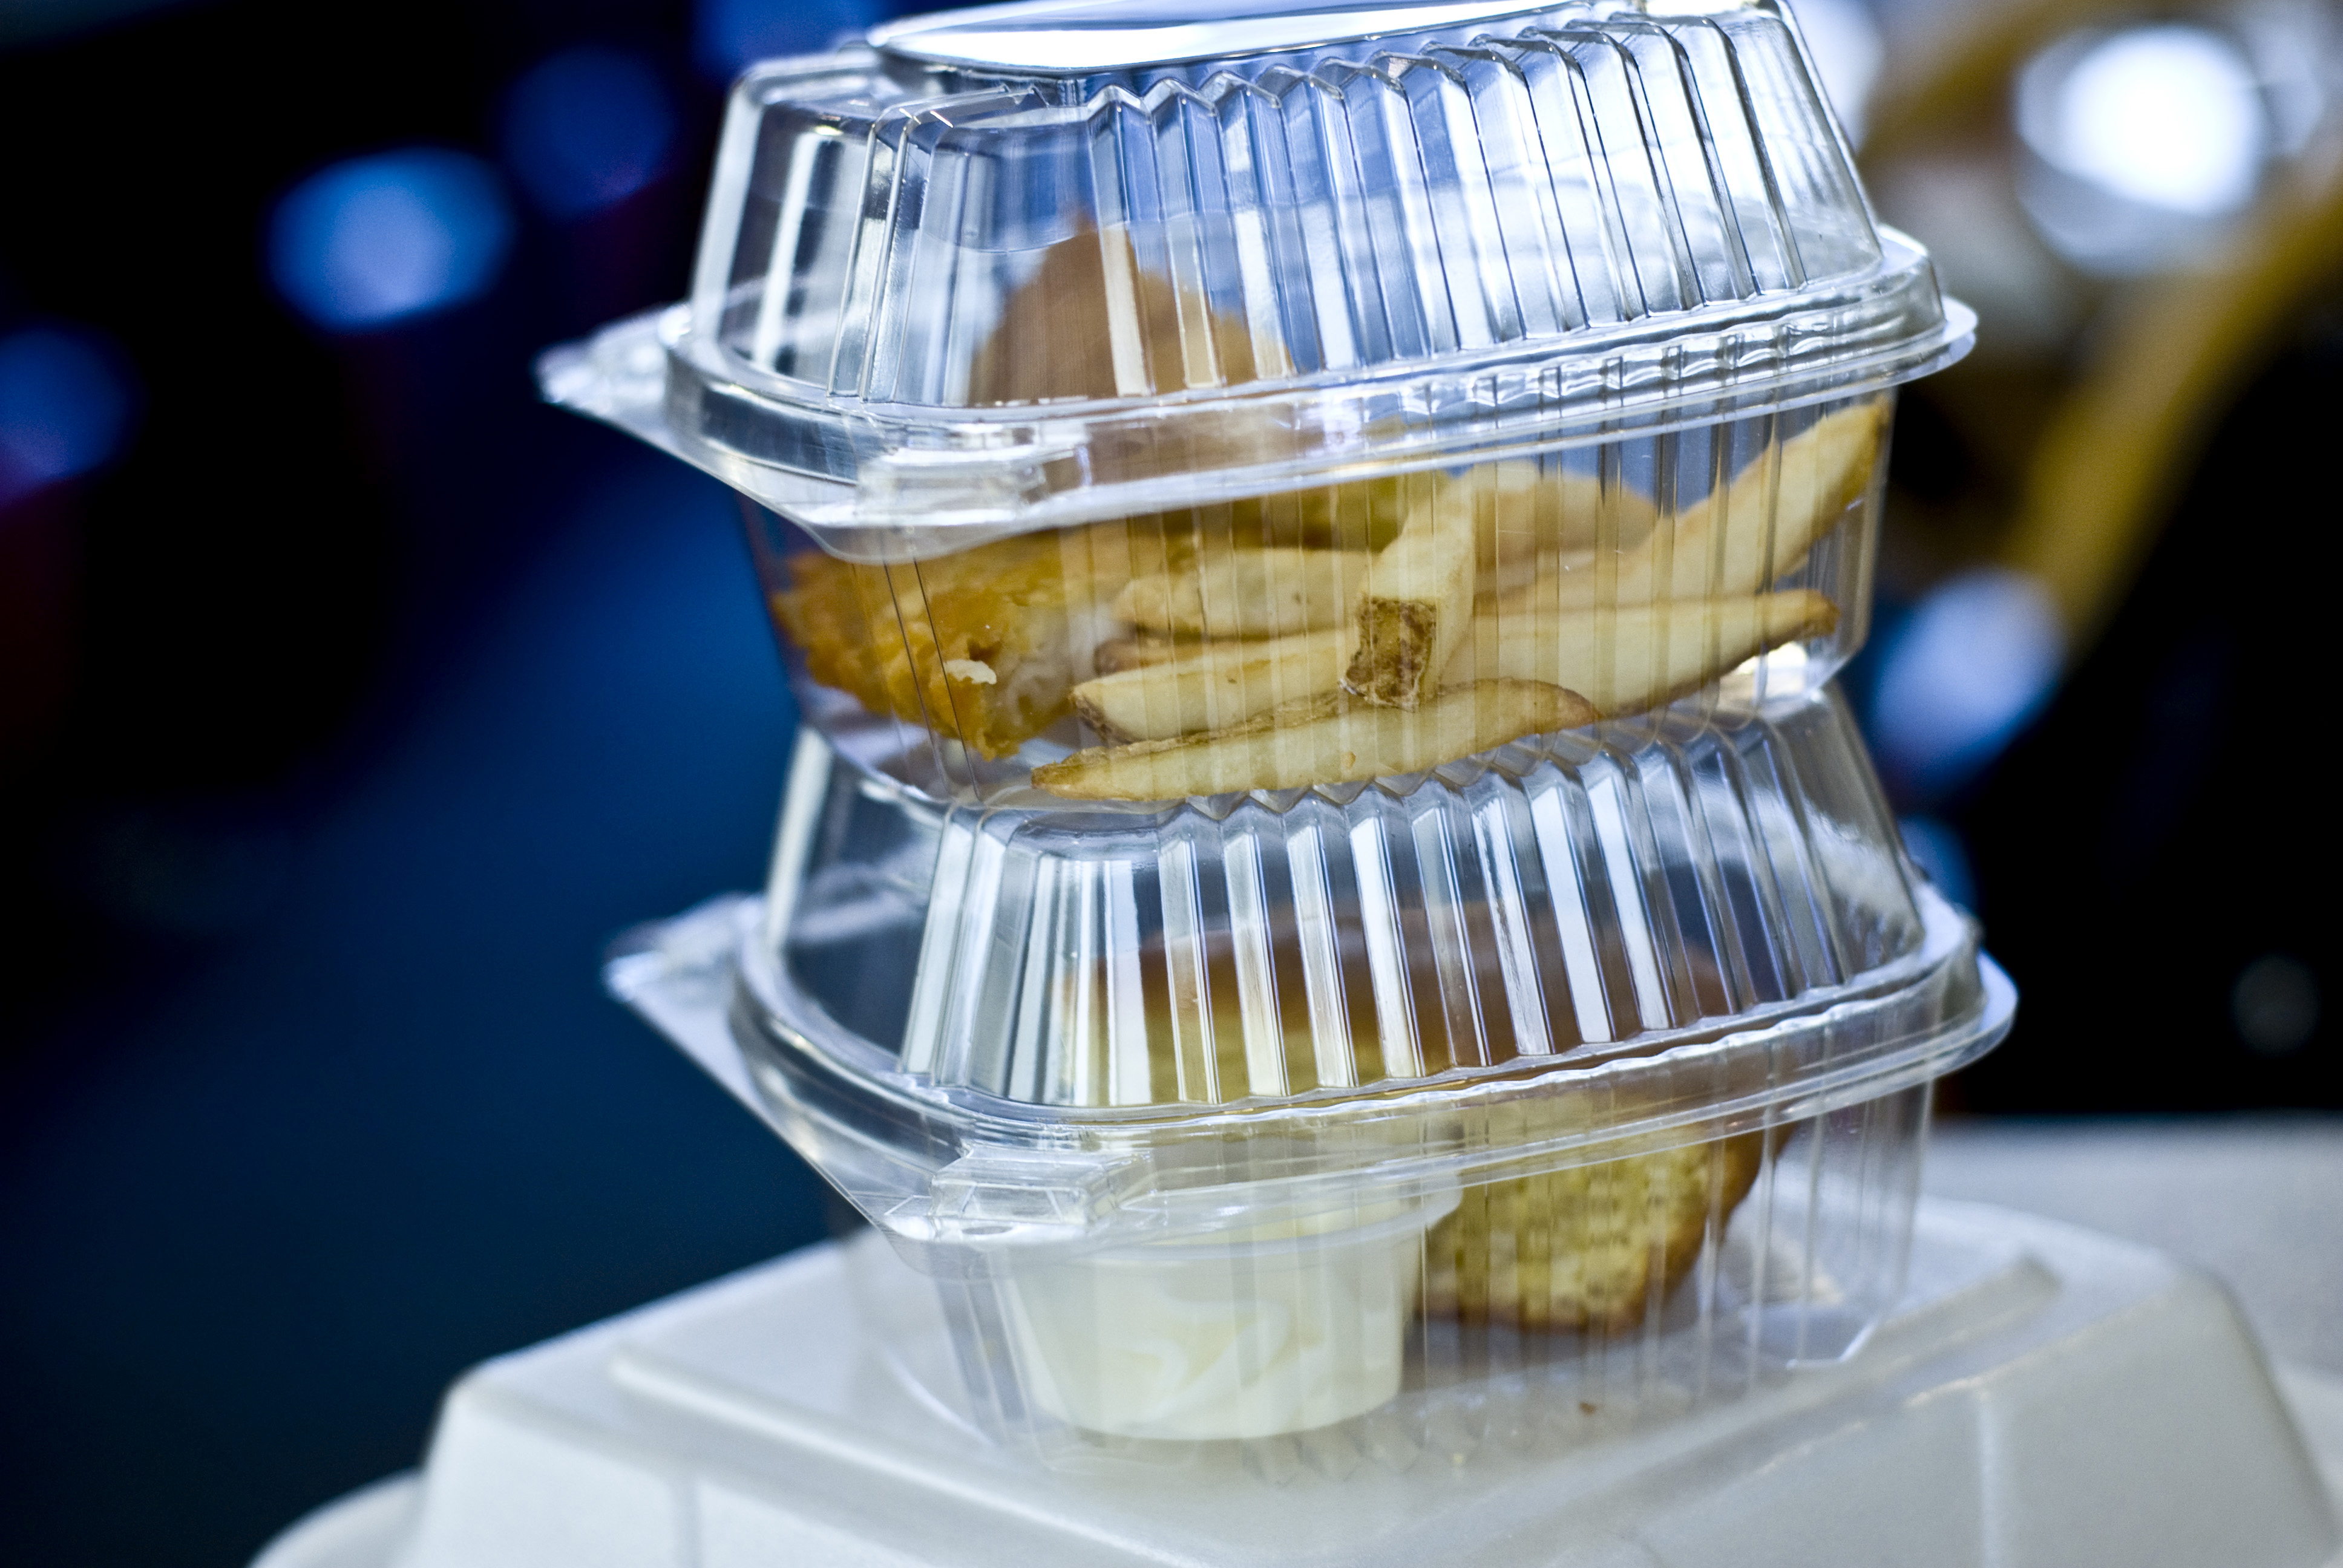 Reducing Disposables in Food Service | Clean Water Action